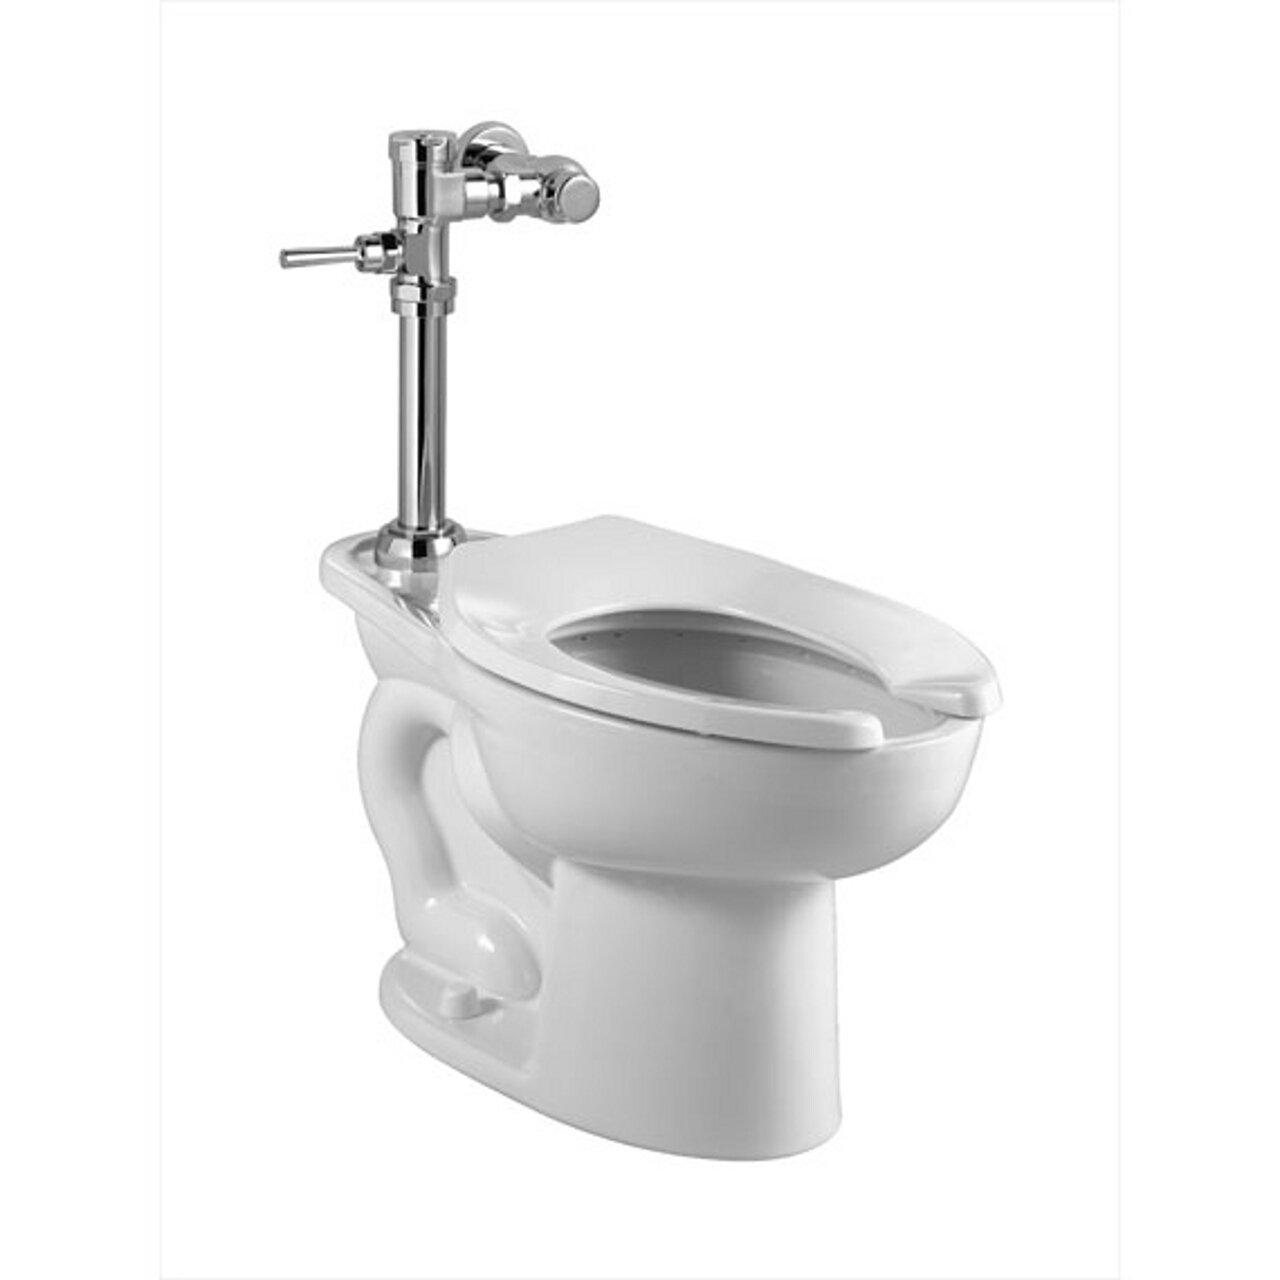 American Standard 2858.016.020 Madera 1.6 GPF Elongated Toilet with Manual Flush Valve, White